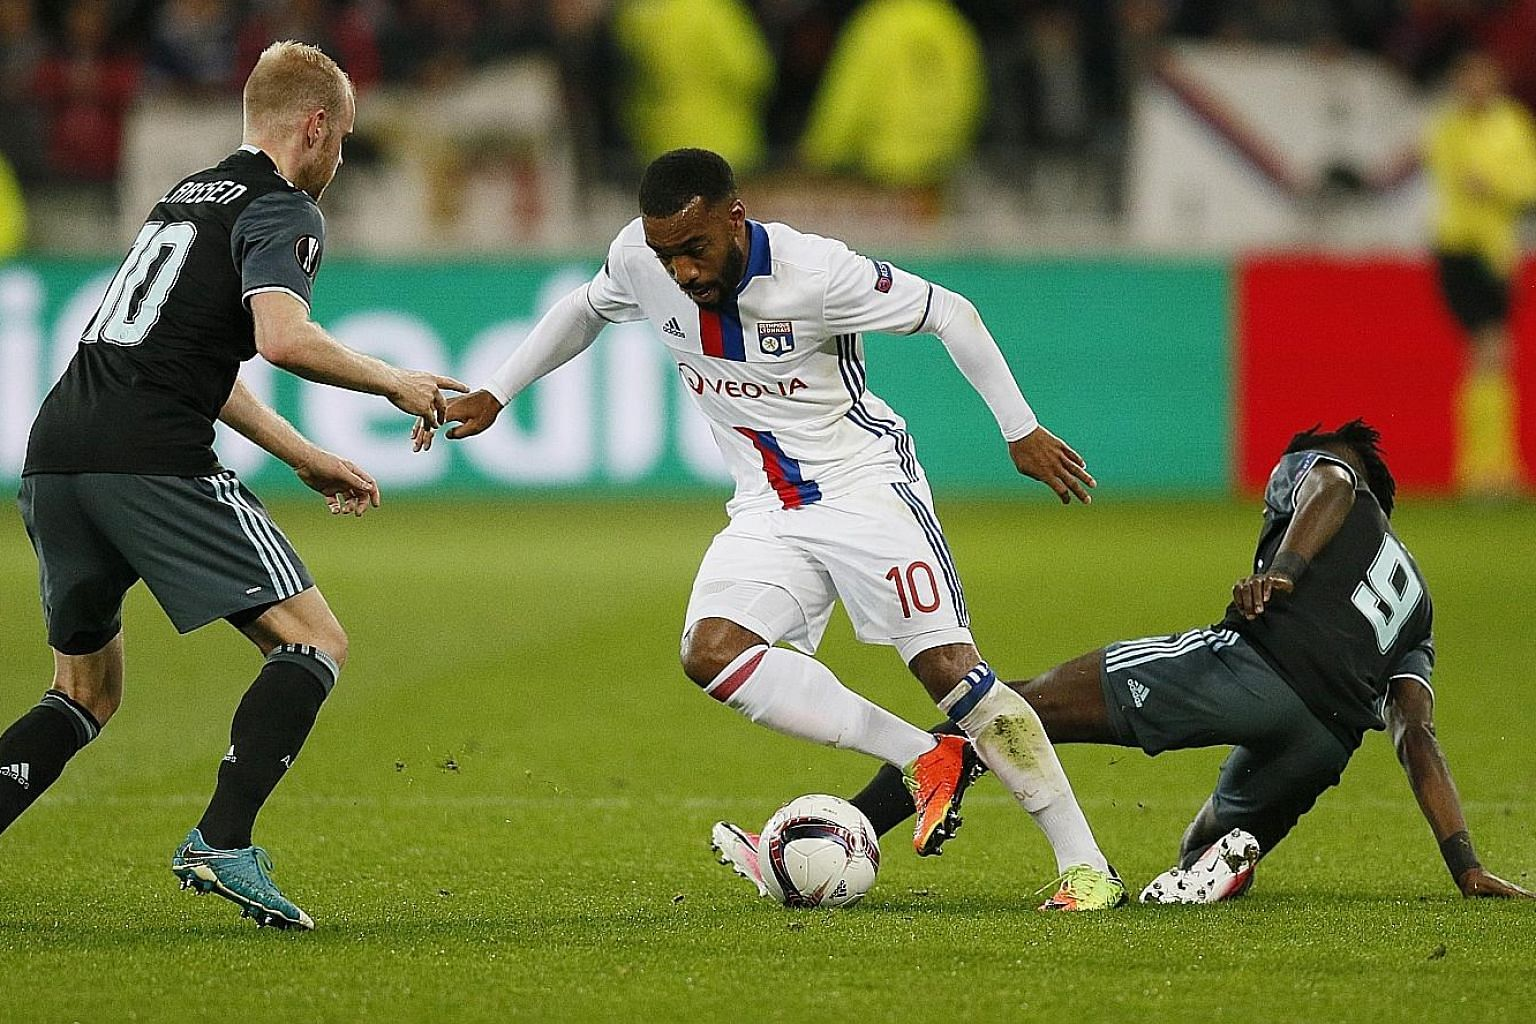 Lyon's Alexandre Lacazette (centre) takes on Ajax's Davy Klaassen after evading Bertrand Traore (right) in the Europa League semi-final last month. Arsenal are believed to be the front-runners in the race to sign the France international.